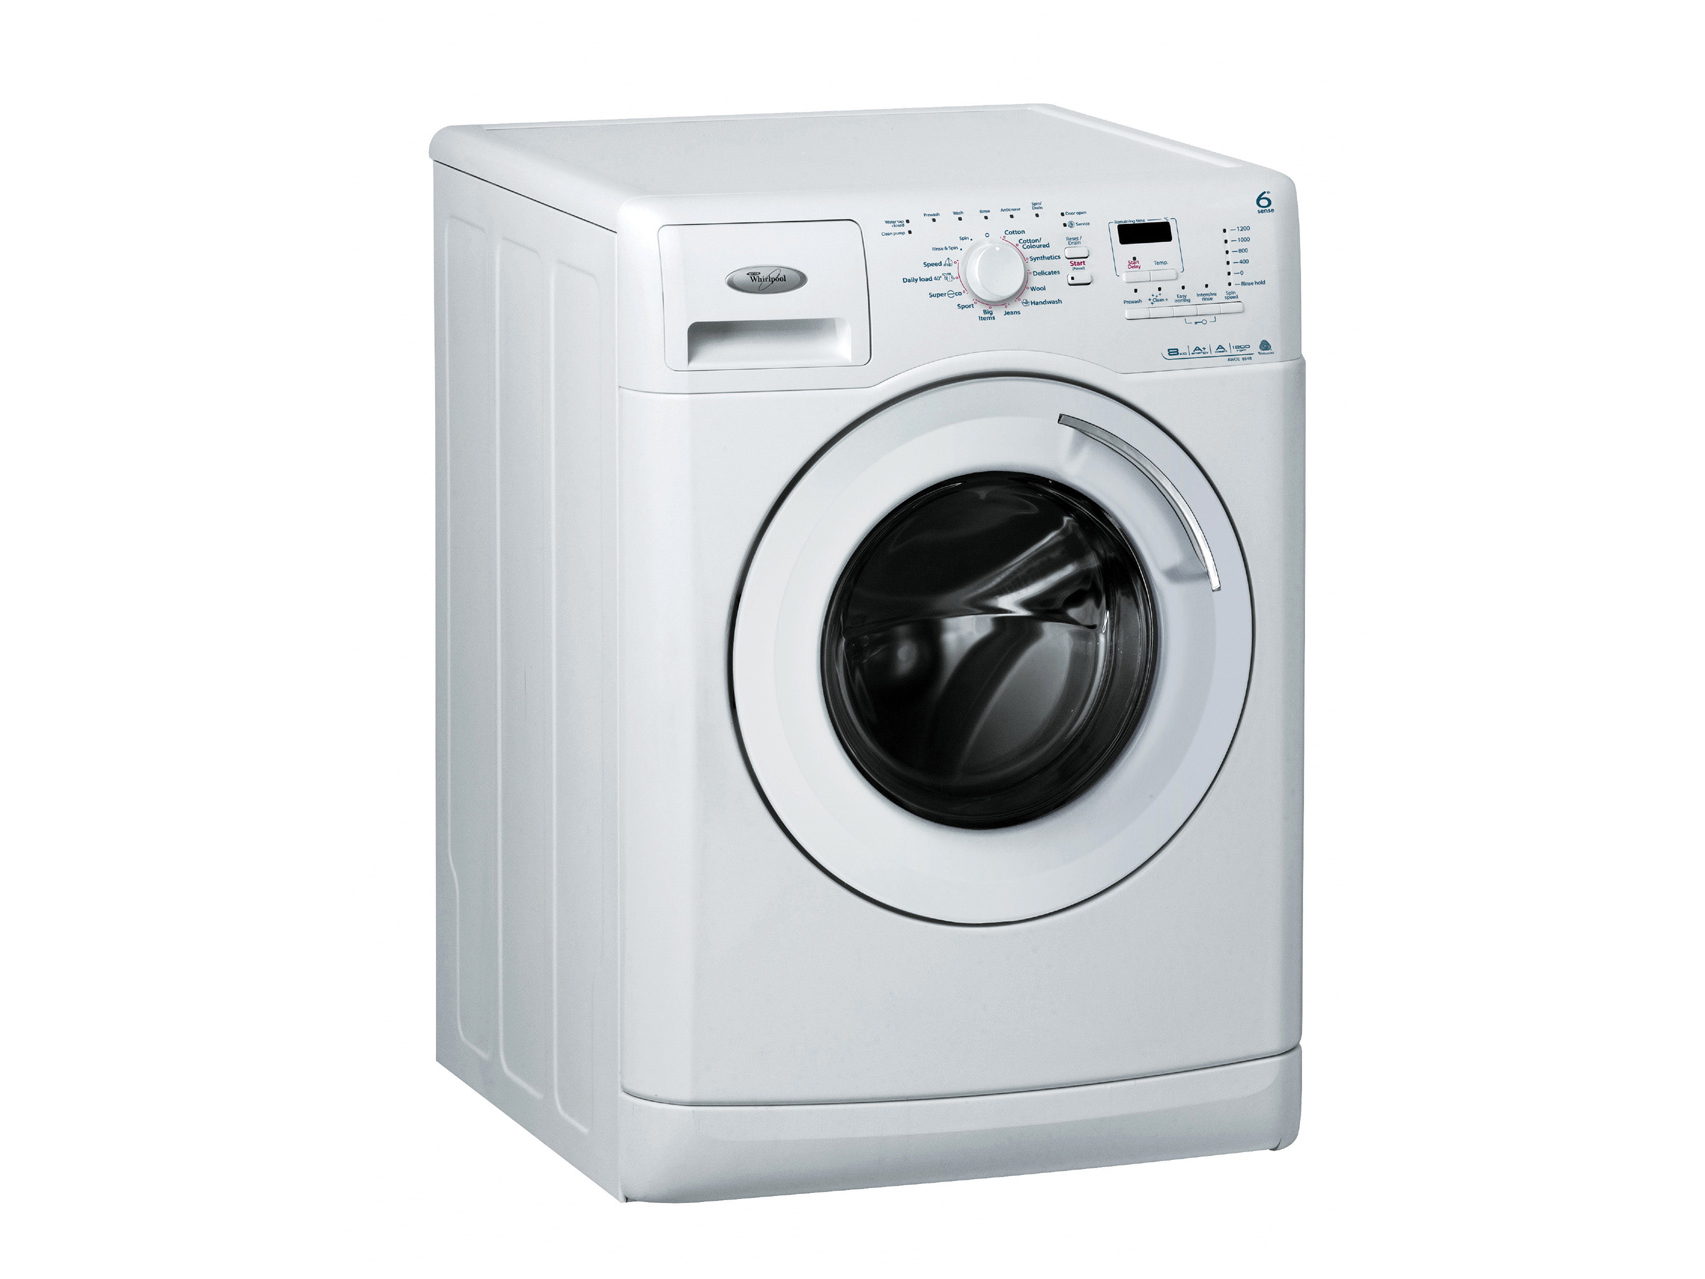 a whirlpool washing machine